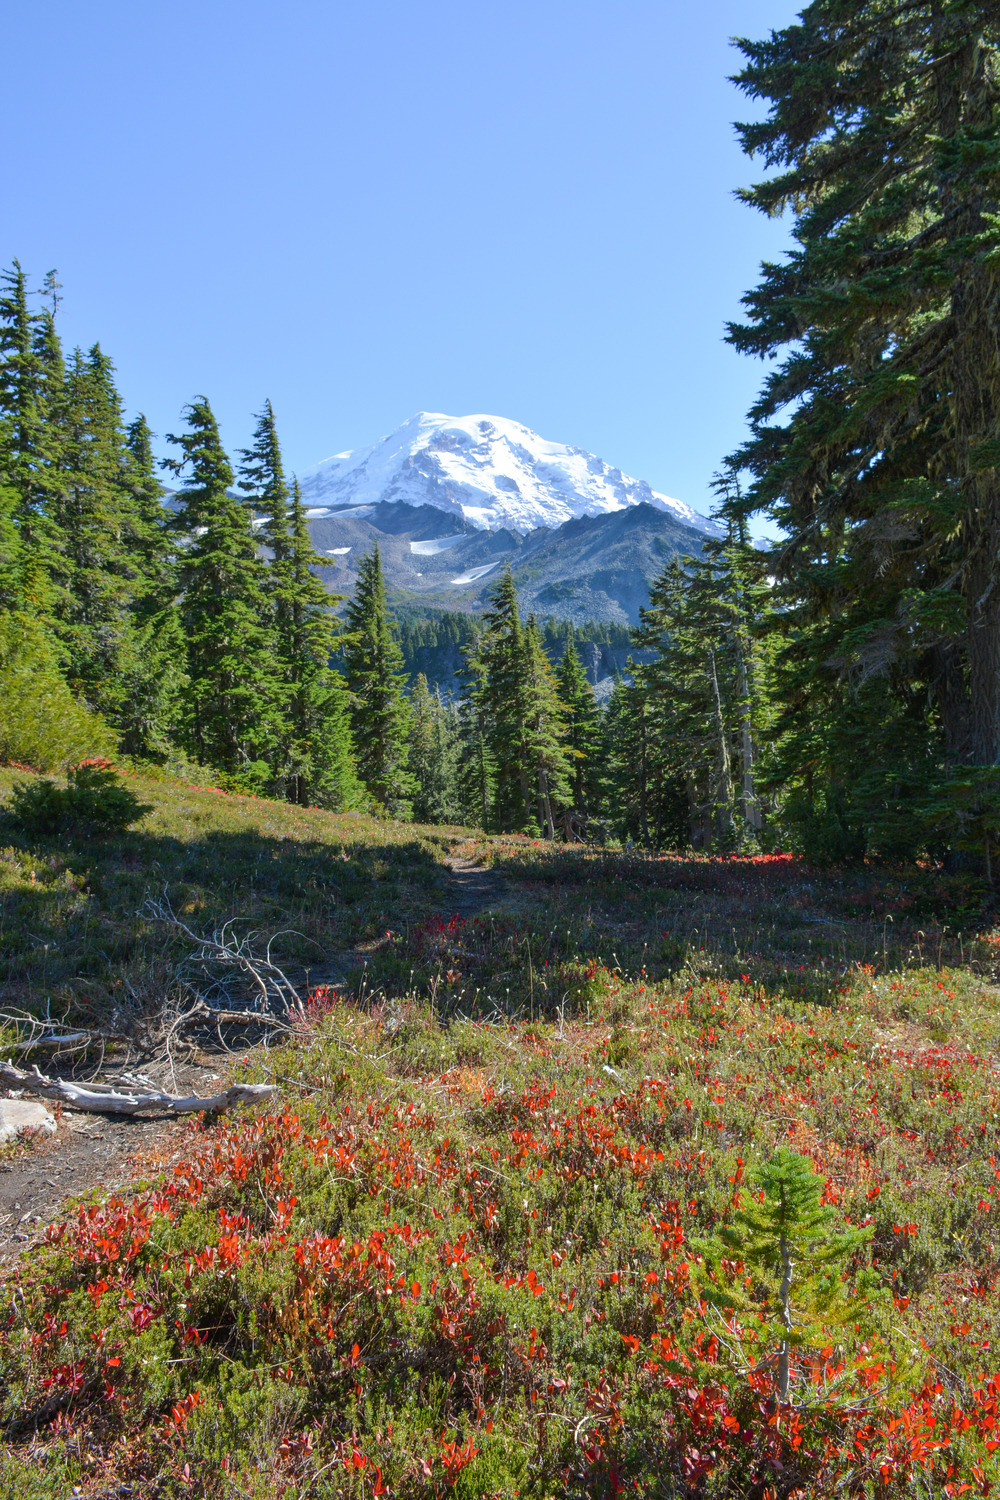 Spray Park, Mount Rainier